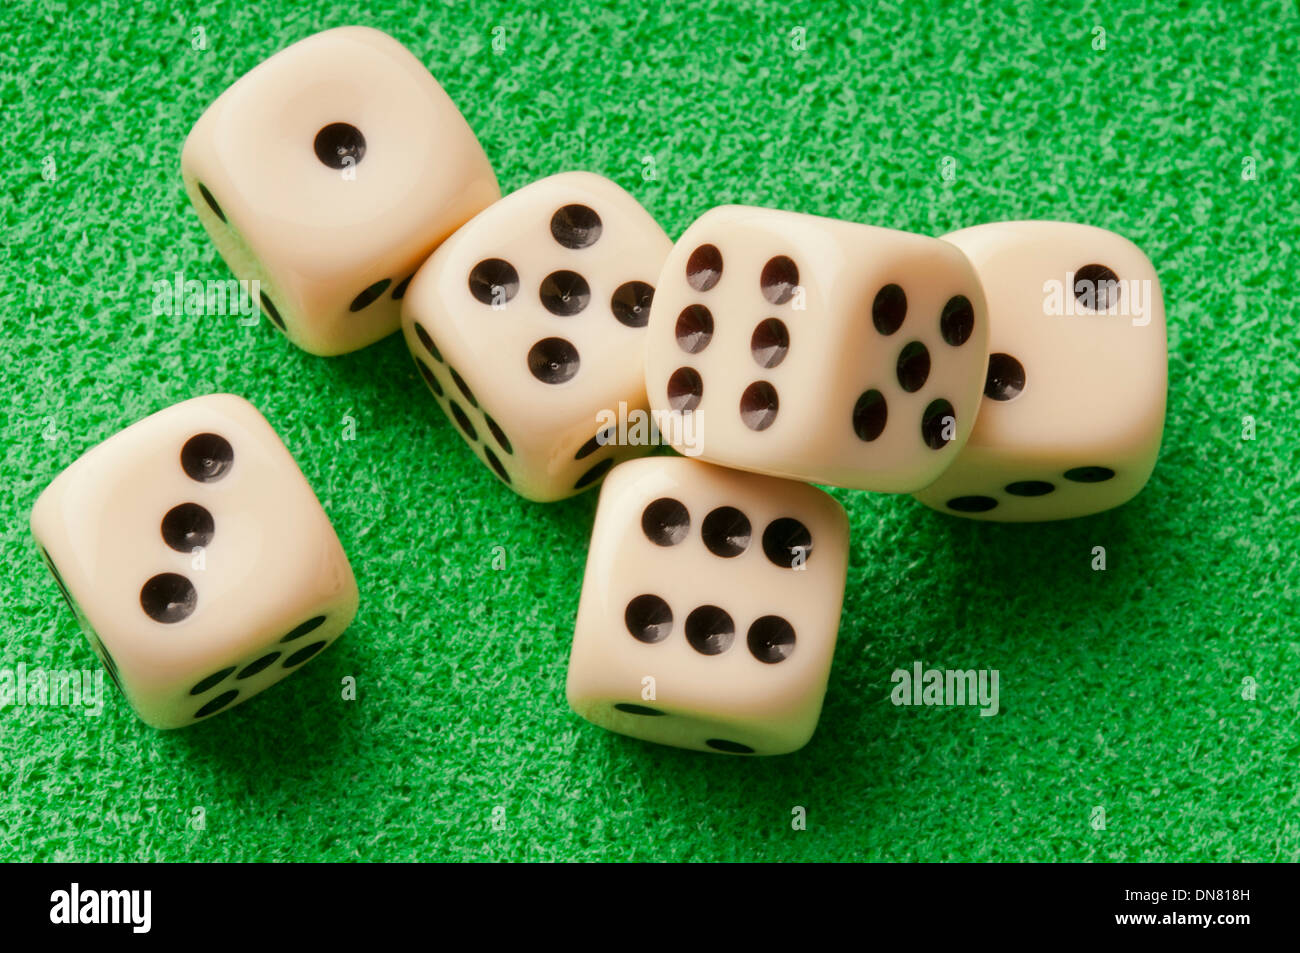 six dice - Stock Image